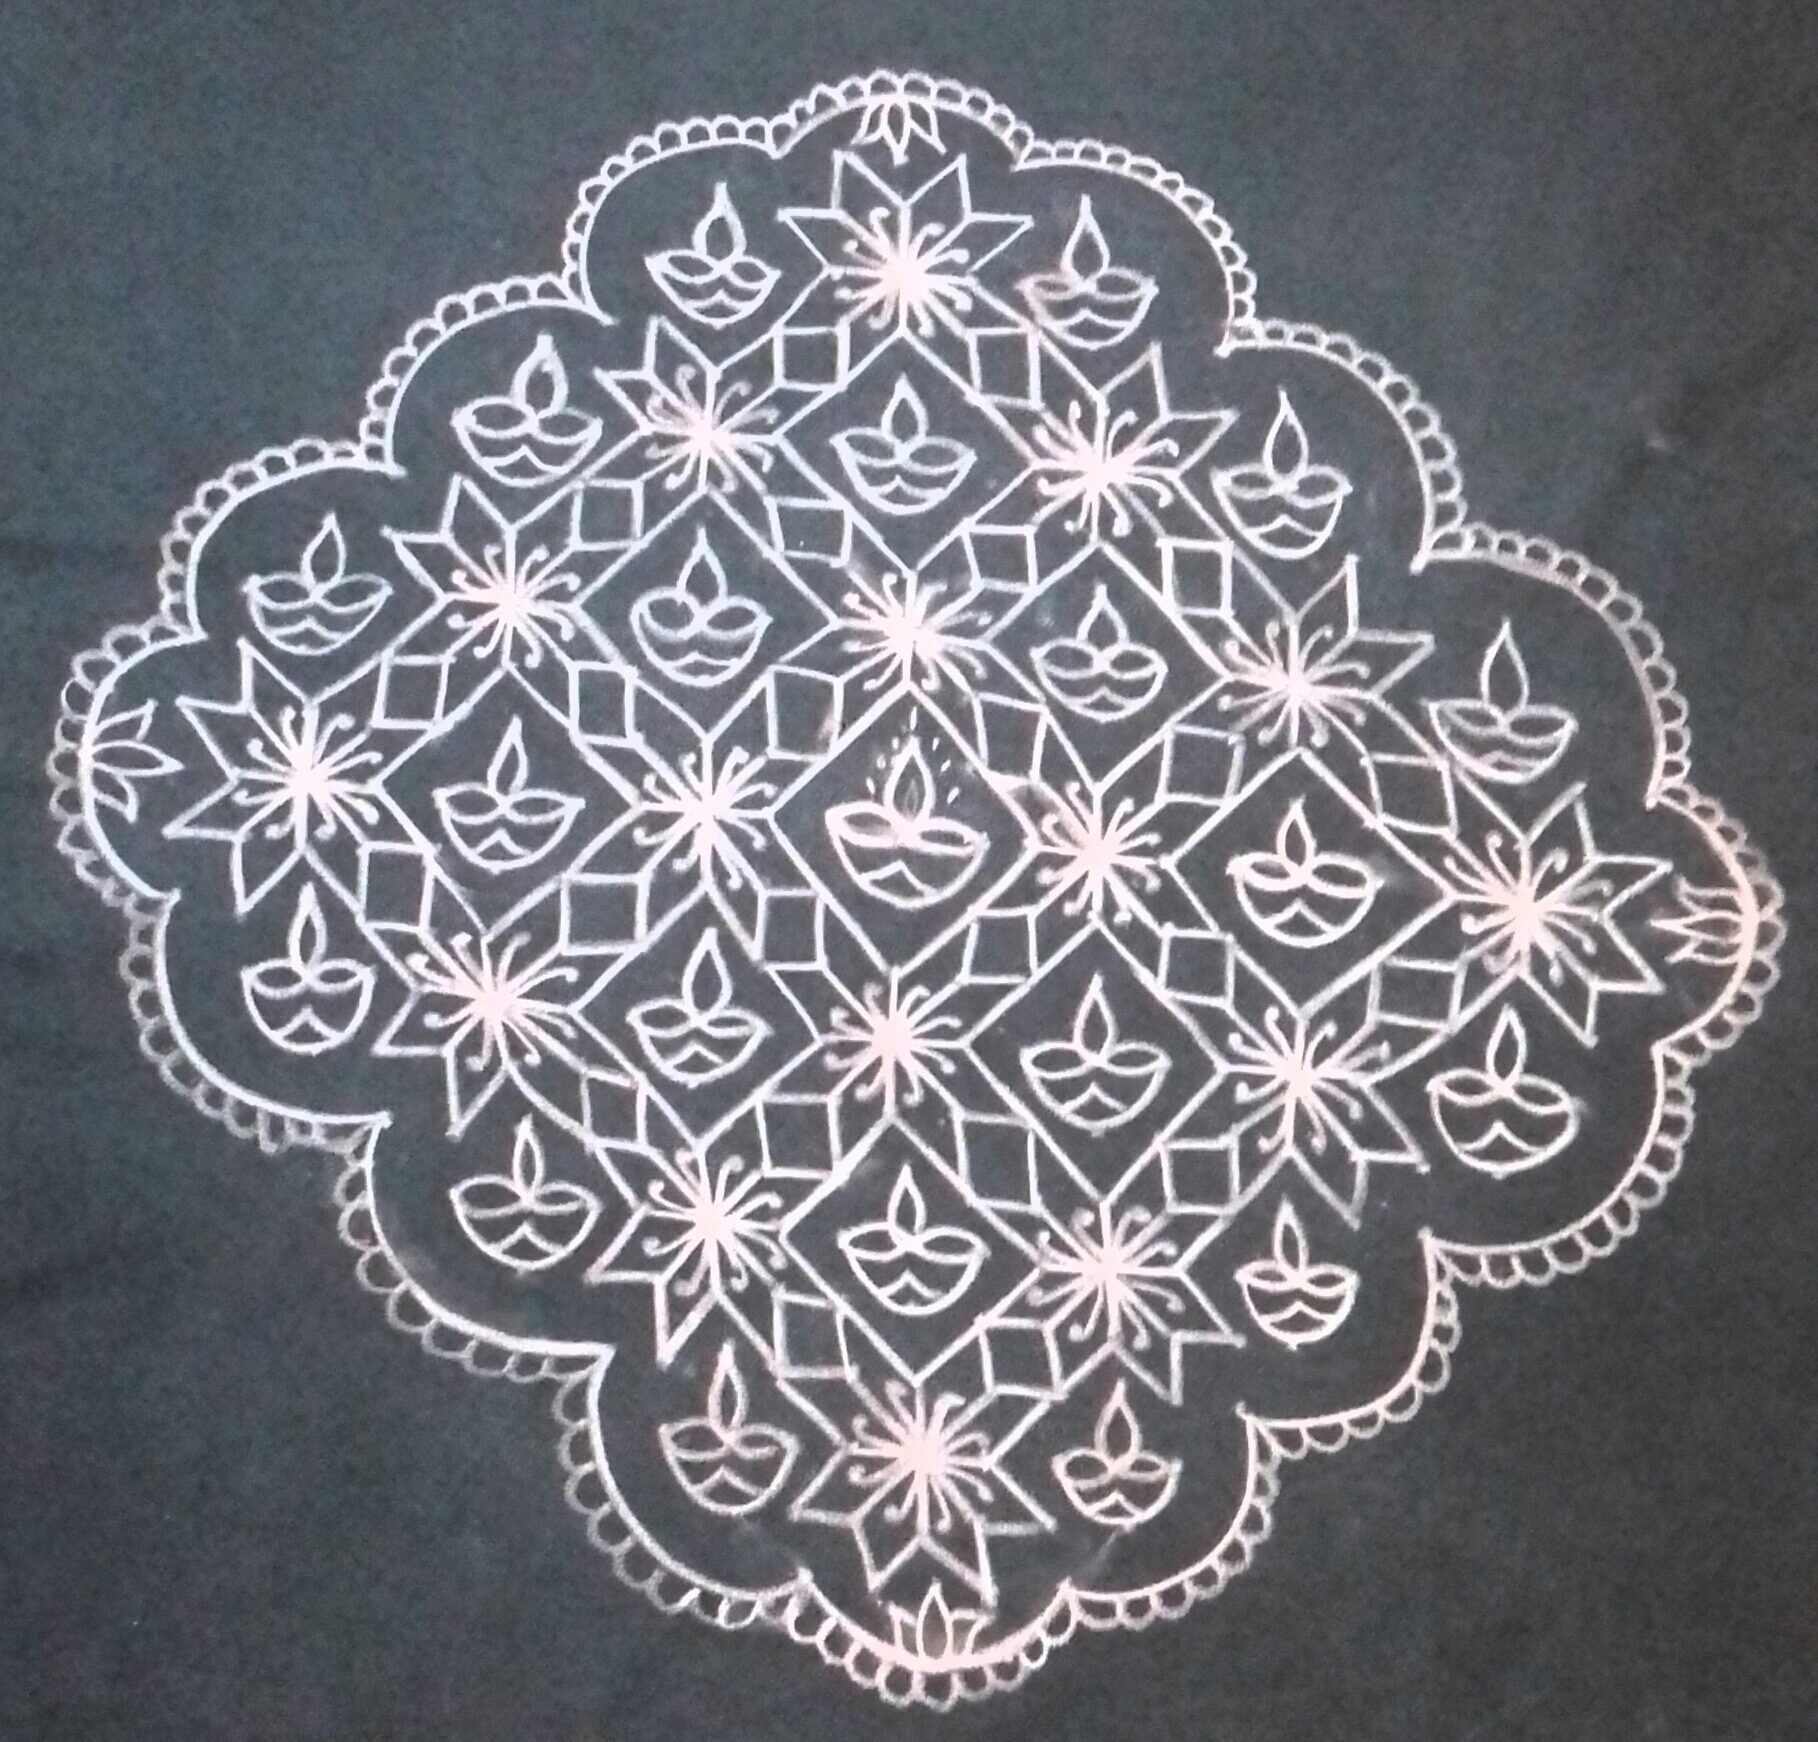 Flower and Diya Kolam || 25 dots contest Kolam